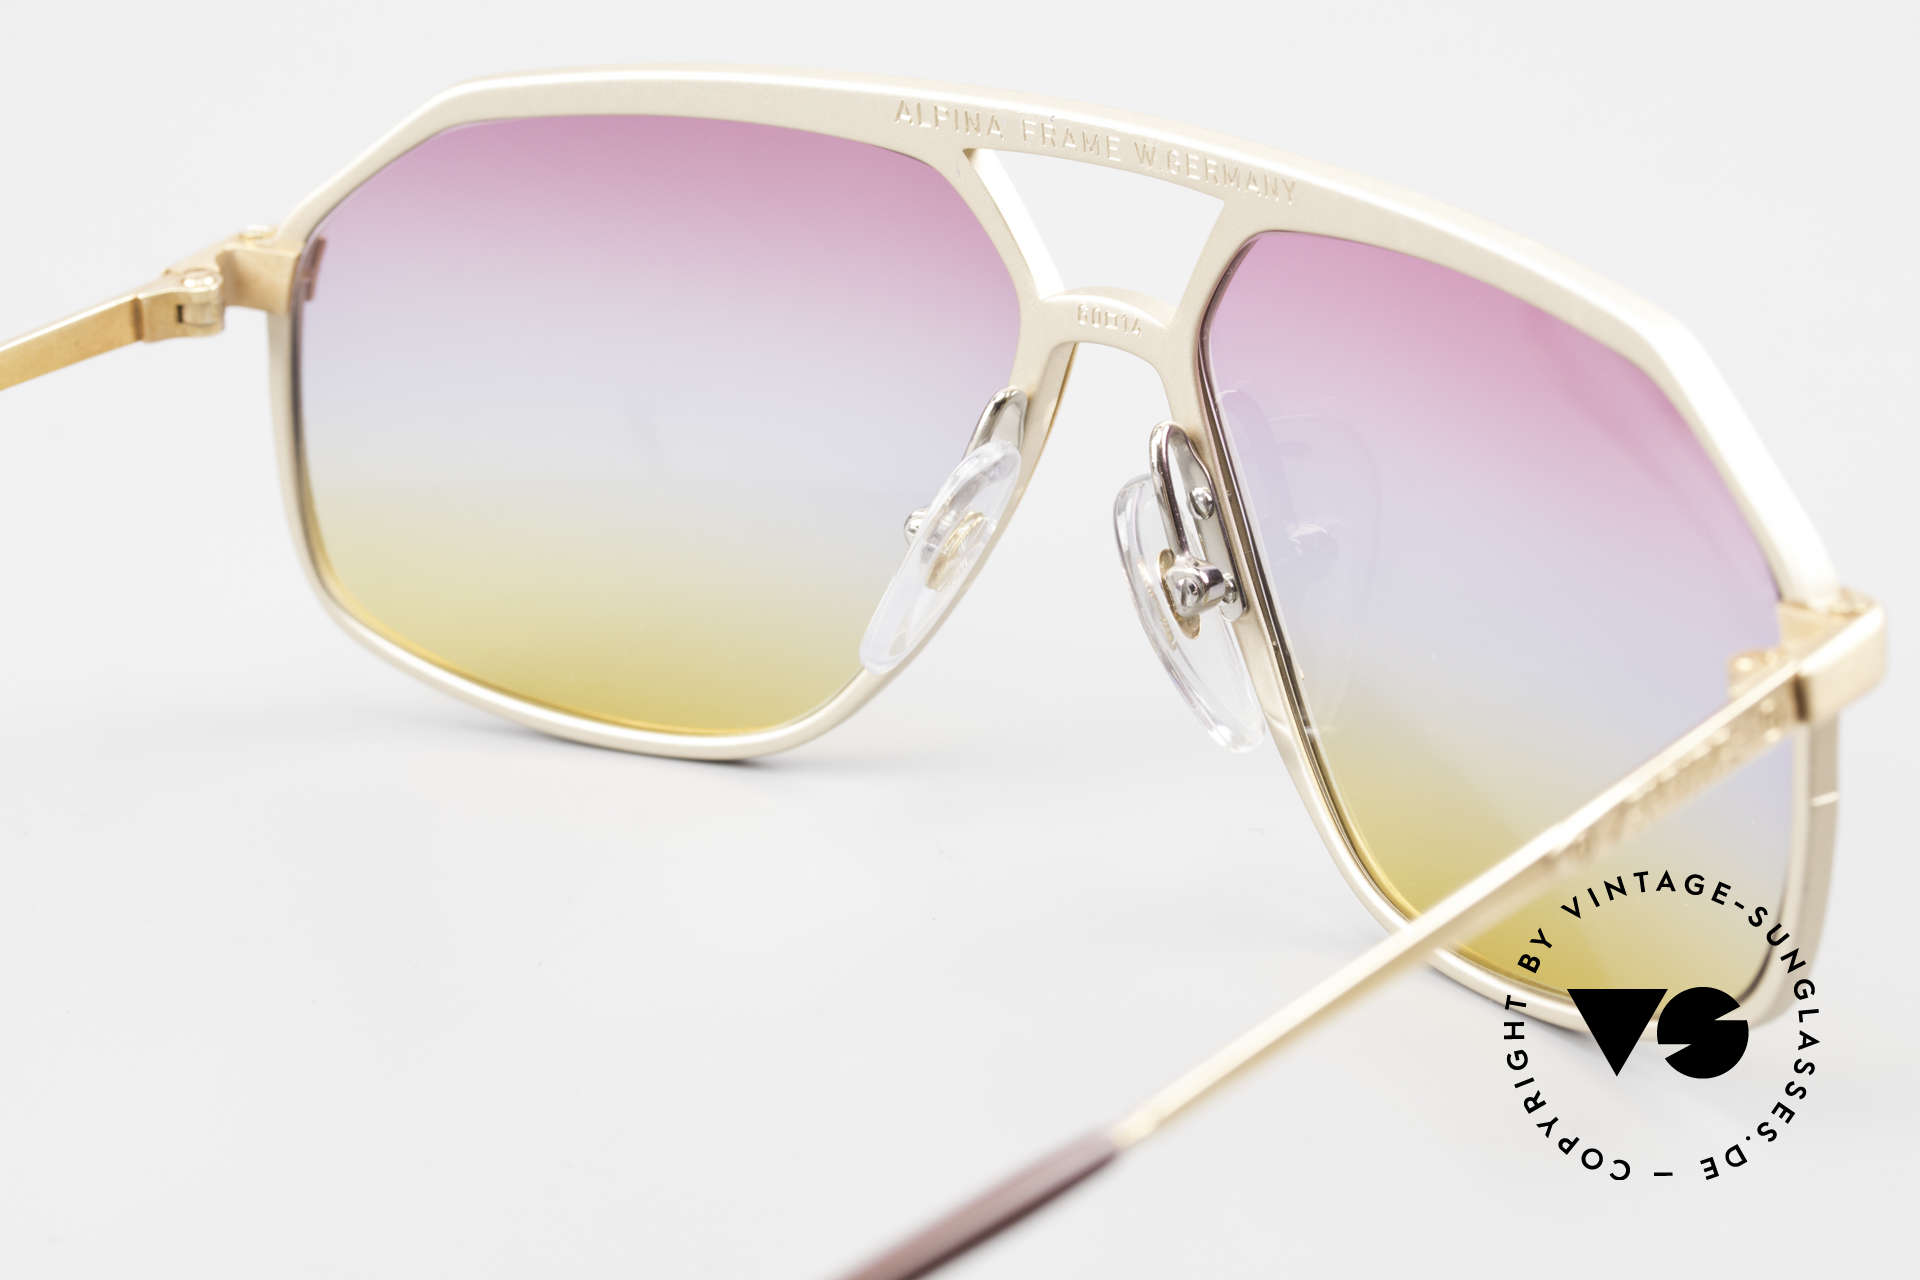 Alpina M6 Iconic 80's Shades Tricolored, never worn (like all our rare old Alpina sunglasses), Made for Men and Women